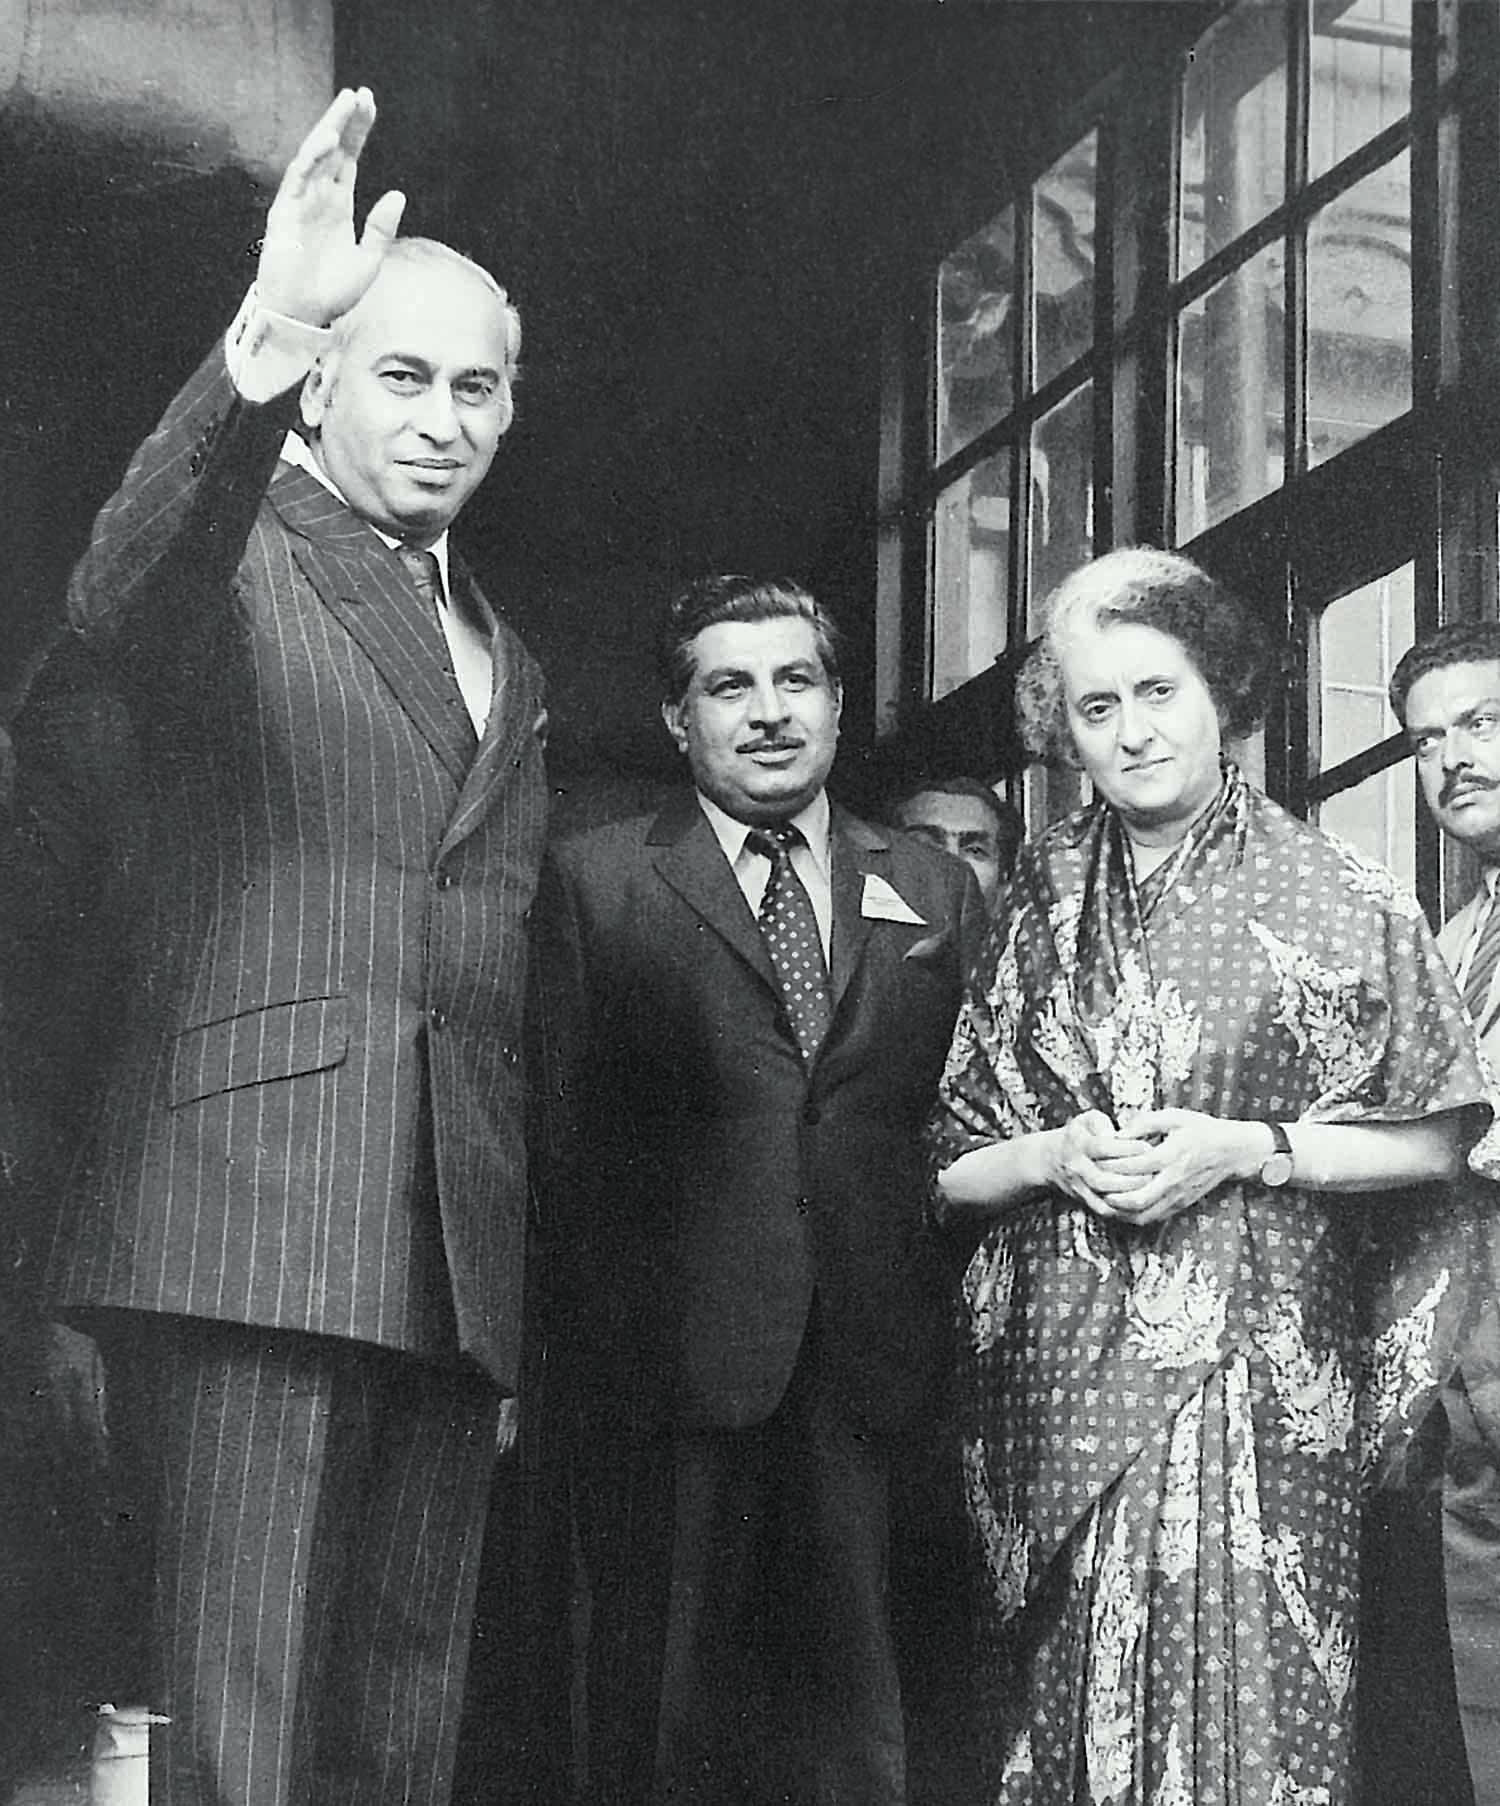 President Zulfikar Ali Bhutto waves towards the cameras as Prime Minister Indira Gandhi looks on during talks that led to the signing of the Simla Agreement on July 2, 1972. Standing in the middle is Ghulam Mustafa Jatoi. | Photo: Dawn / White Star Archives